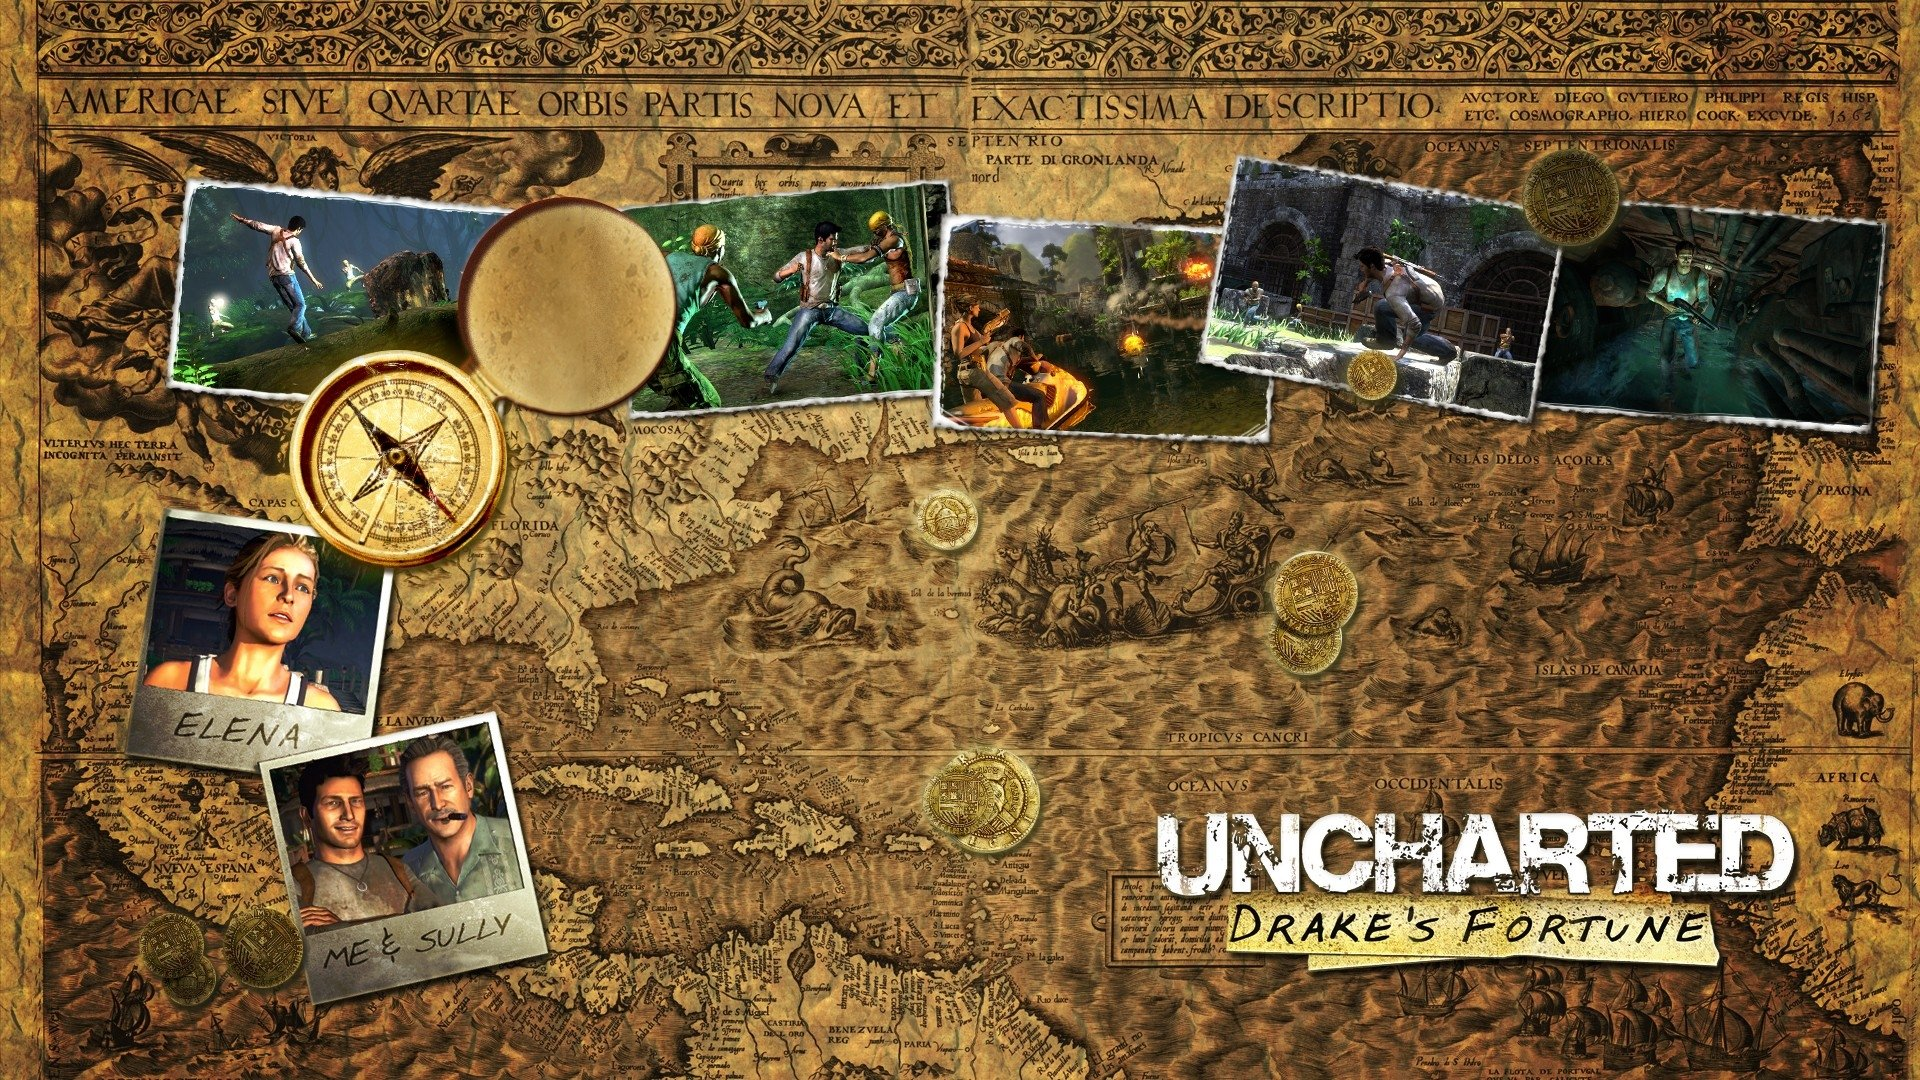 Uncharted Drakes Fortune Full HD Wallpaper And Background Image